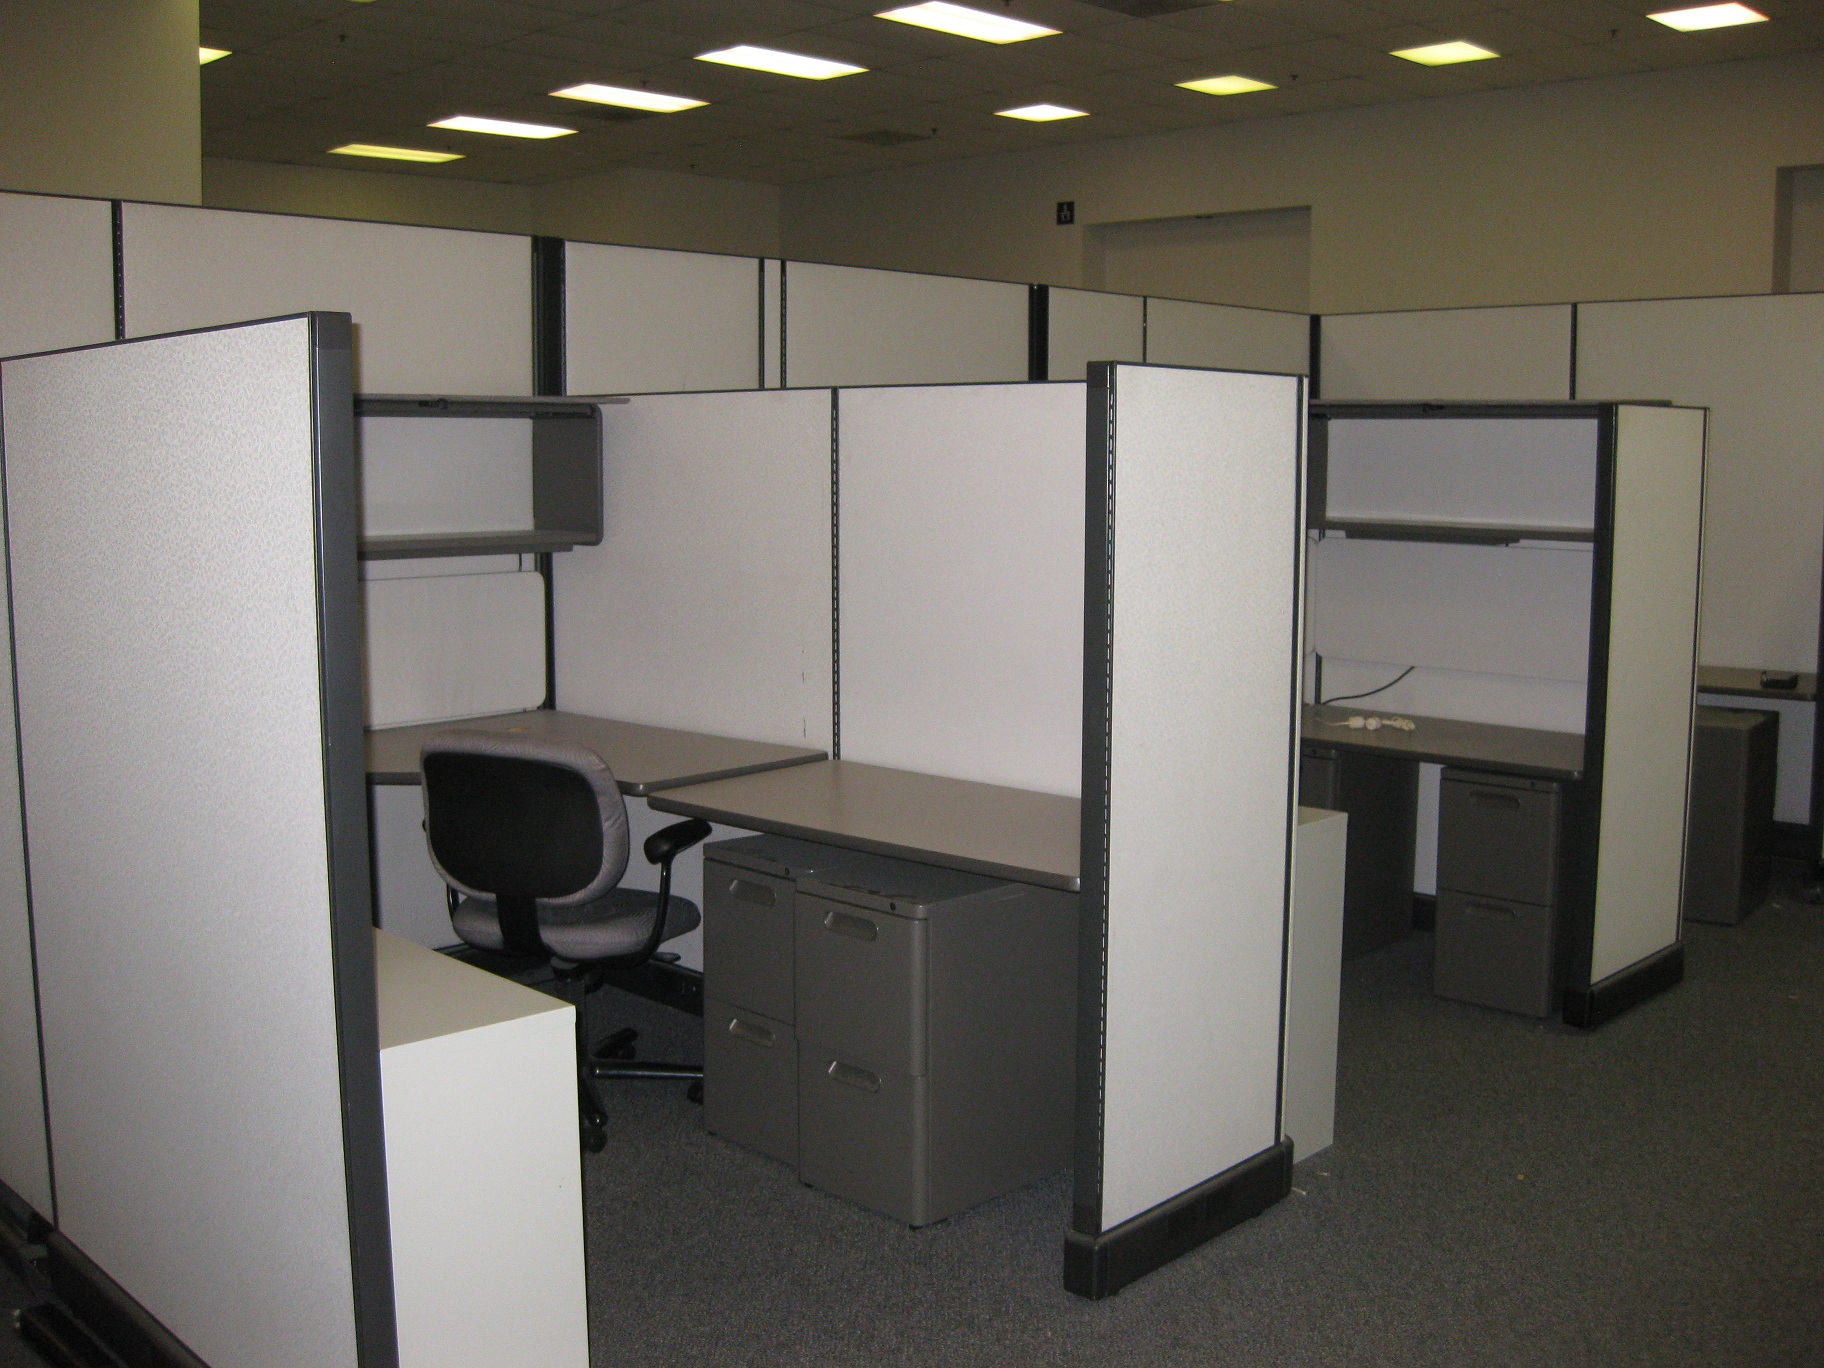 cubicle for office. Office Partitions - System Furniture Used Cubicles In Orange County : Santa Ana, Anaheim, Fullerton, La Mirada Yorba Linda, Cypress, Buena Park, Cubicle For